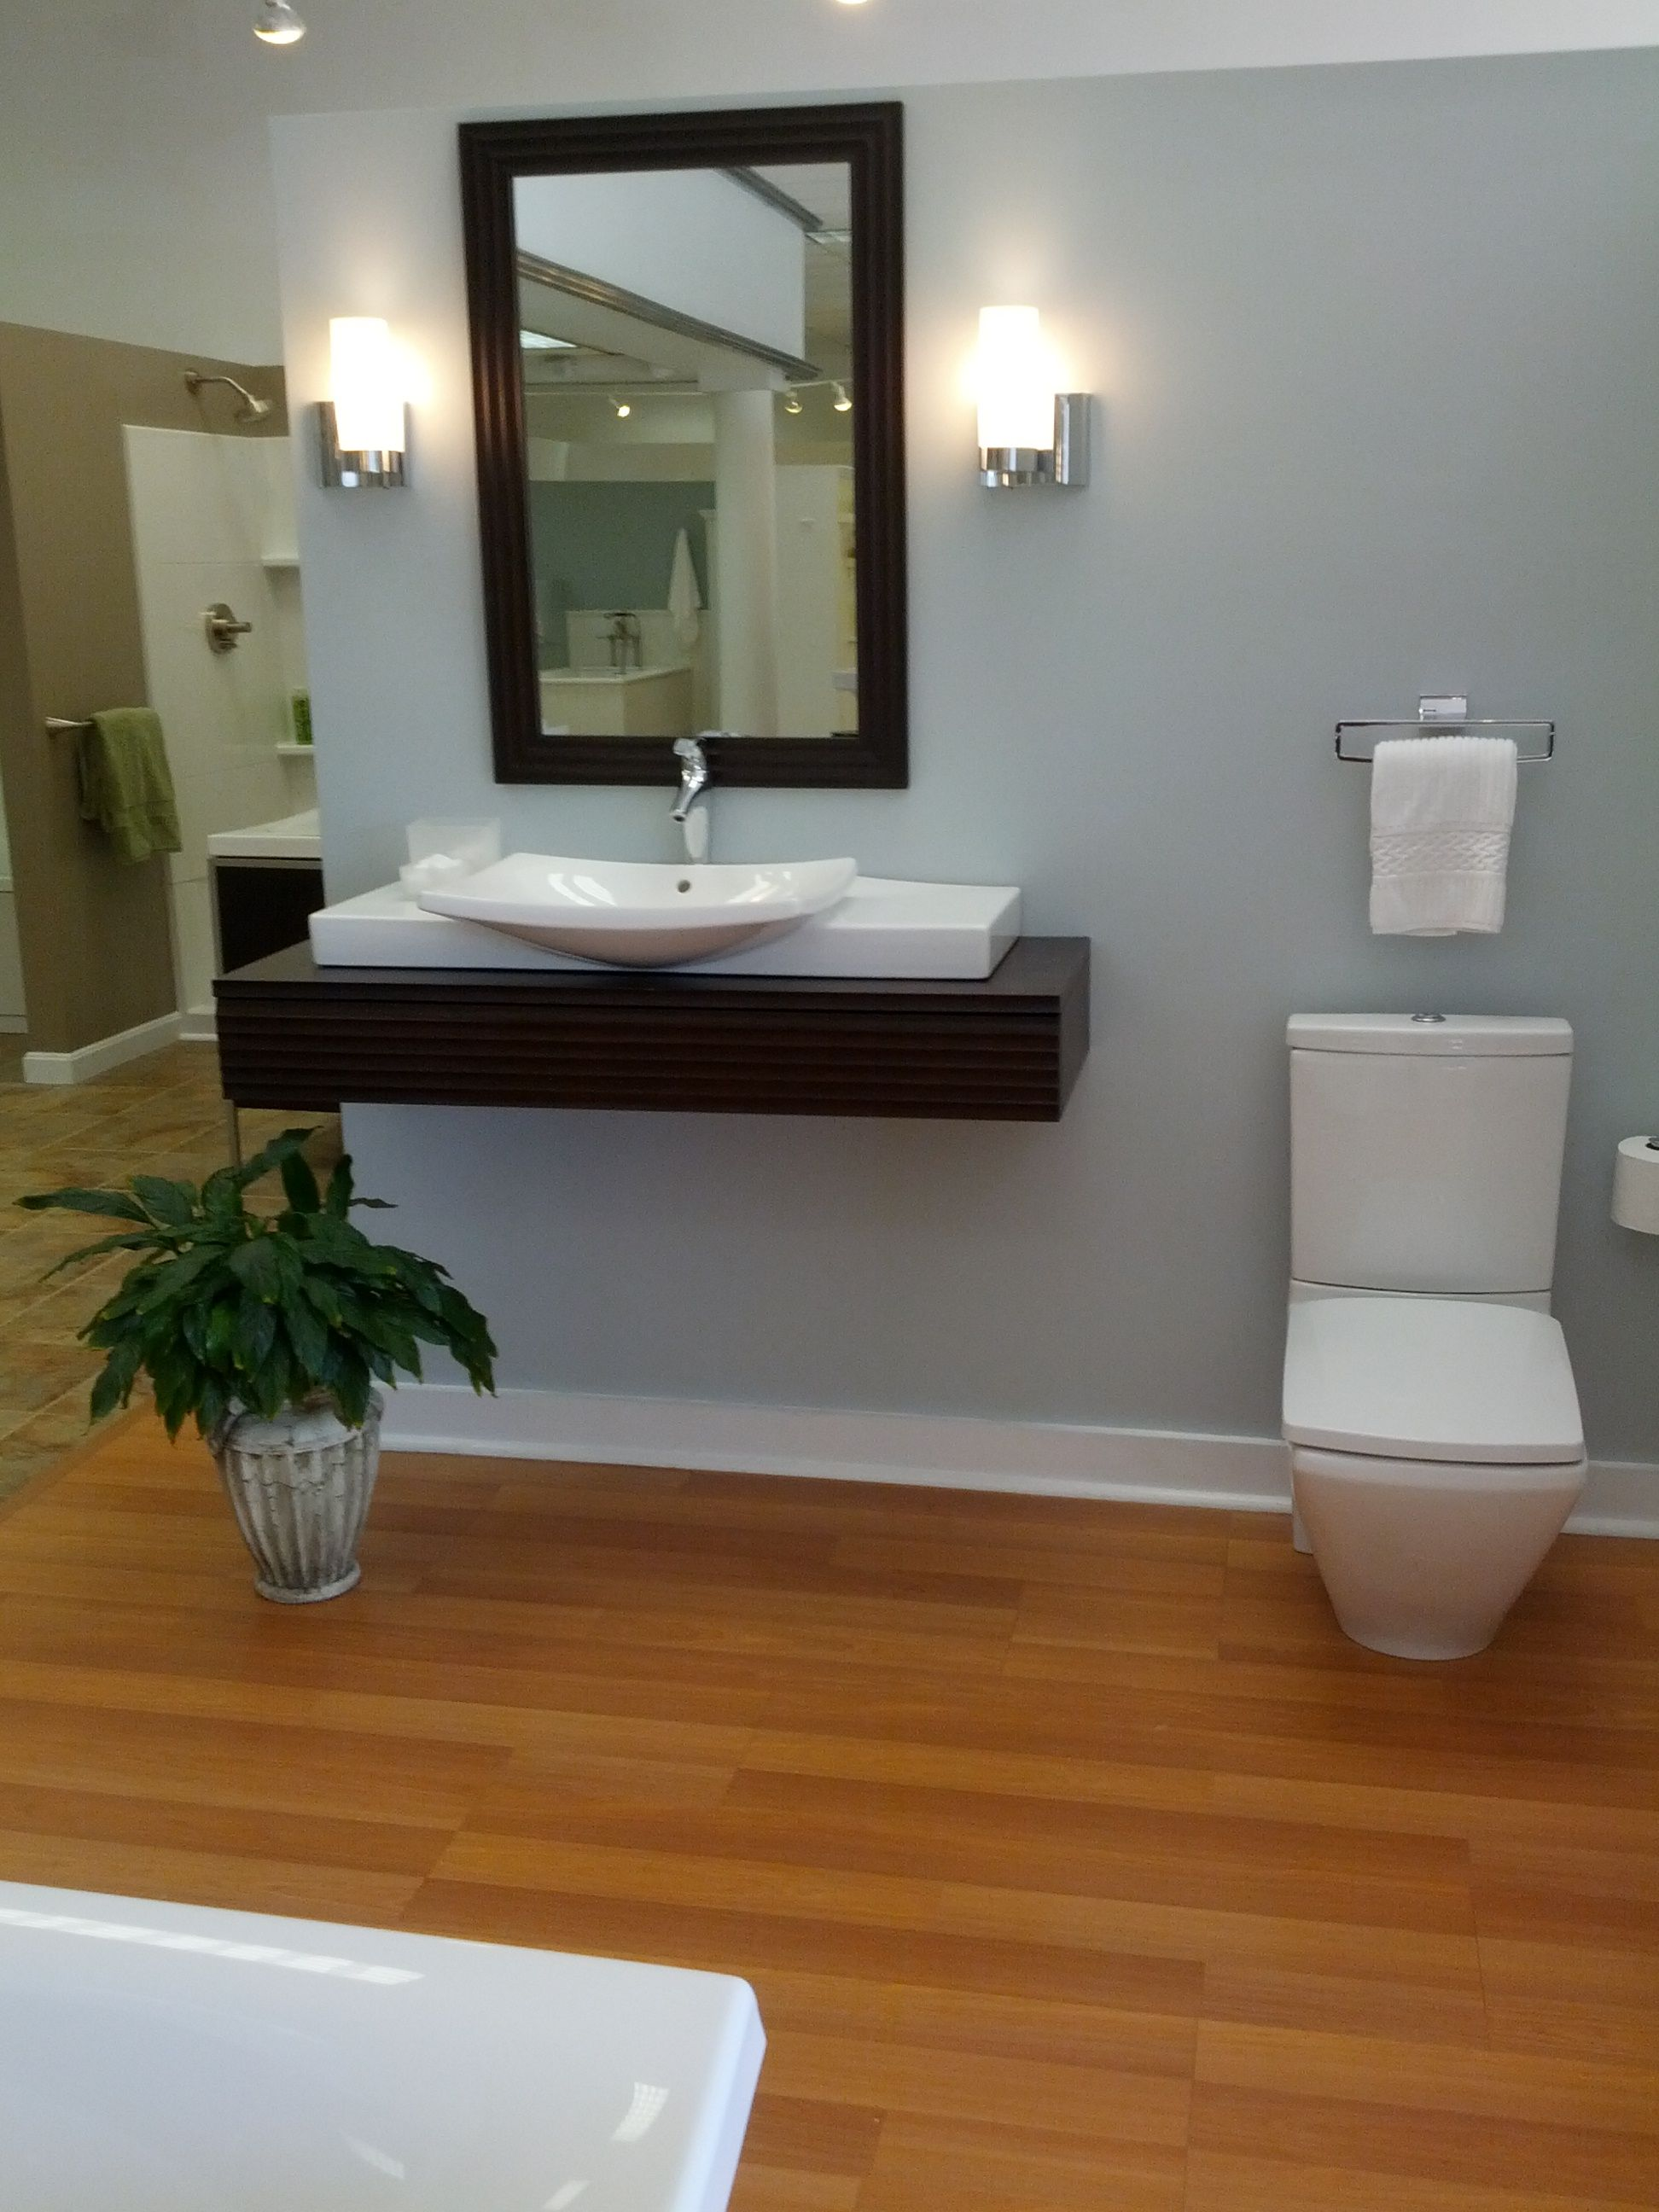 Pictures Of Modern Handicap Bathrooms For The Handicap Bathroom